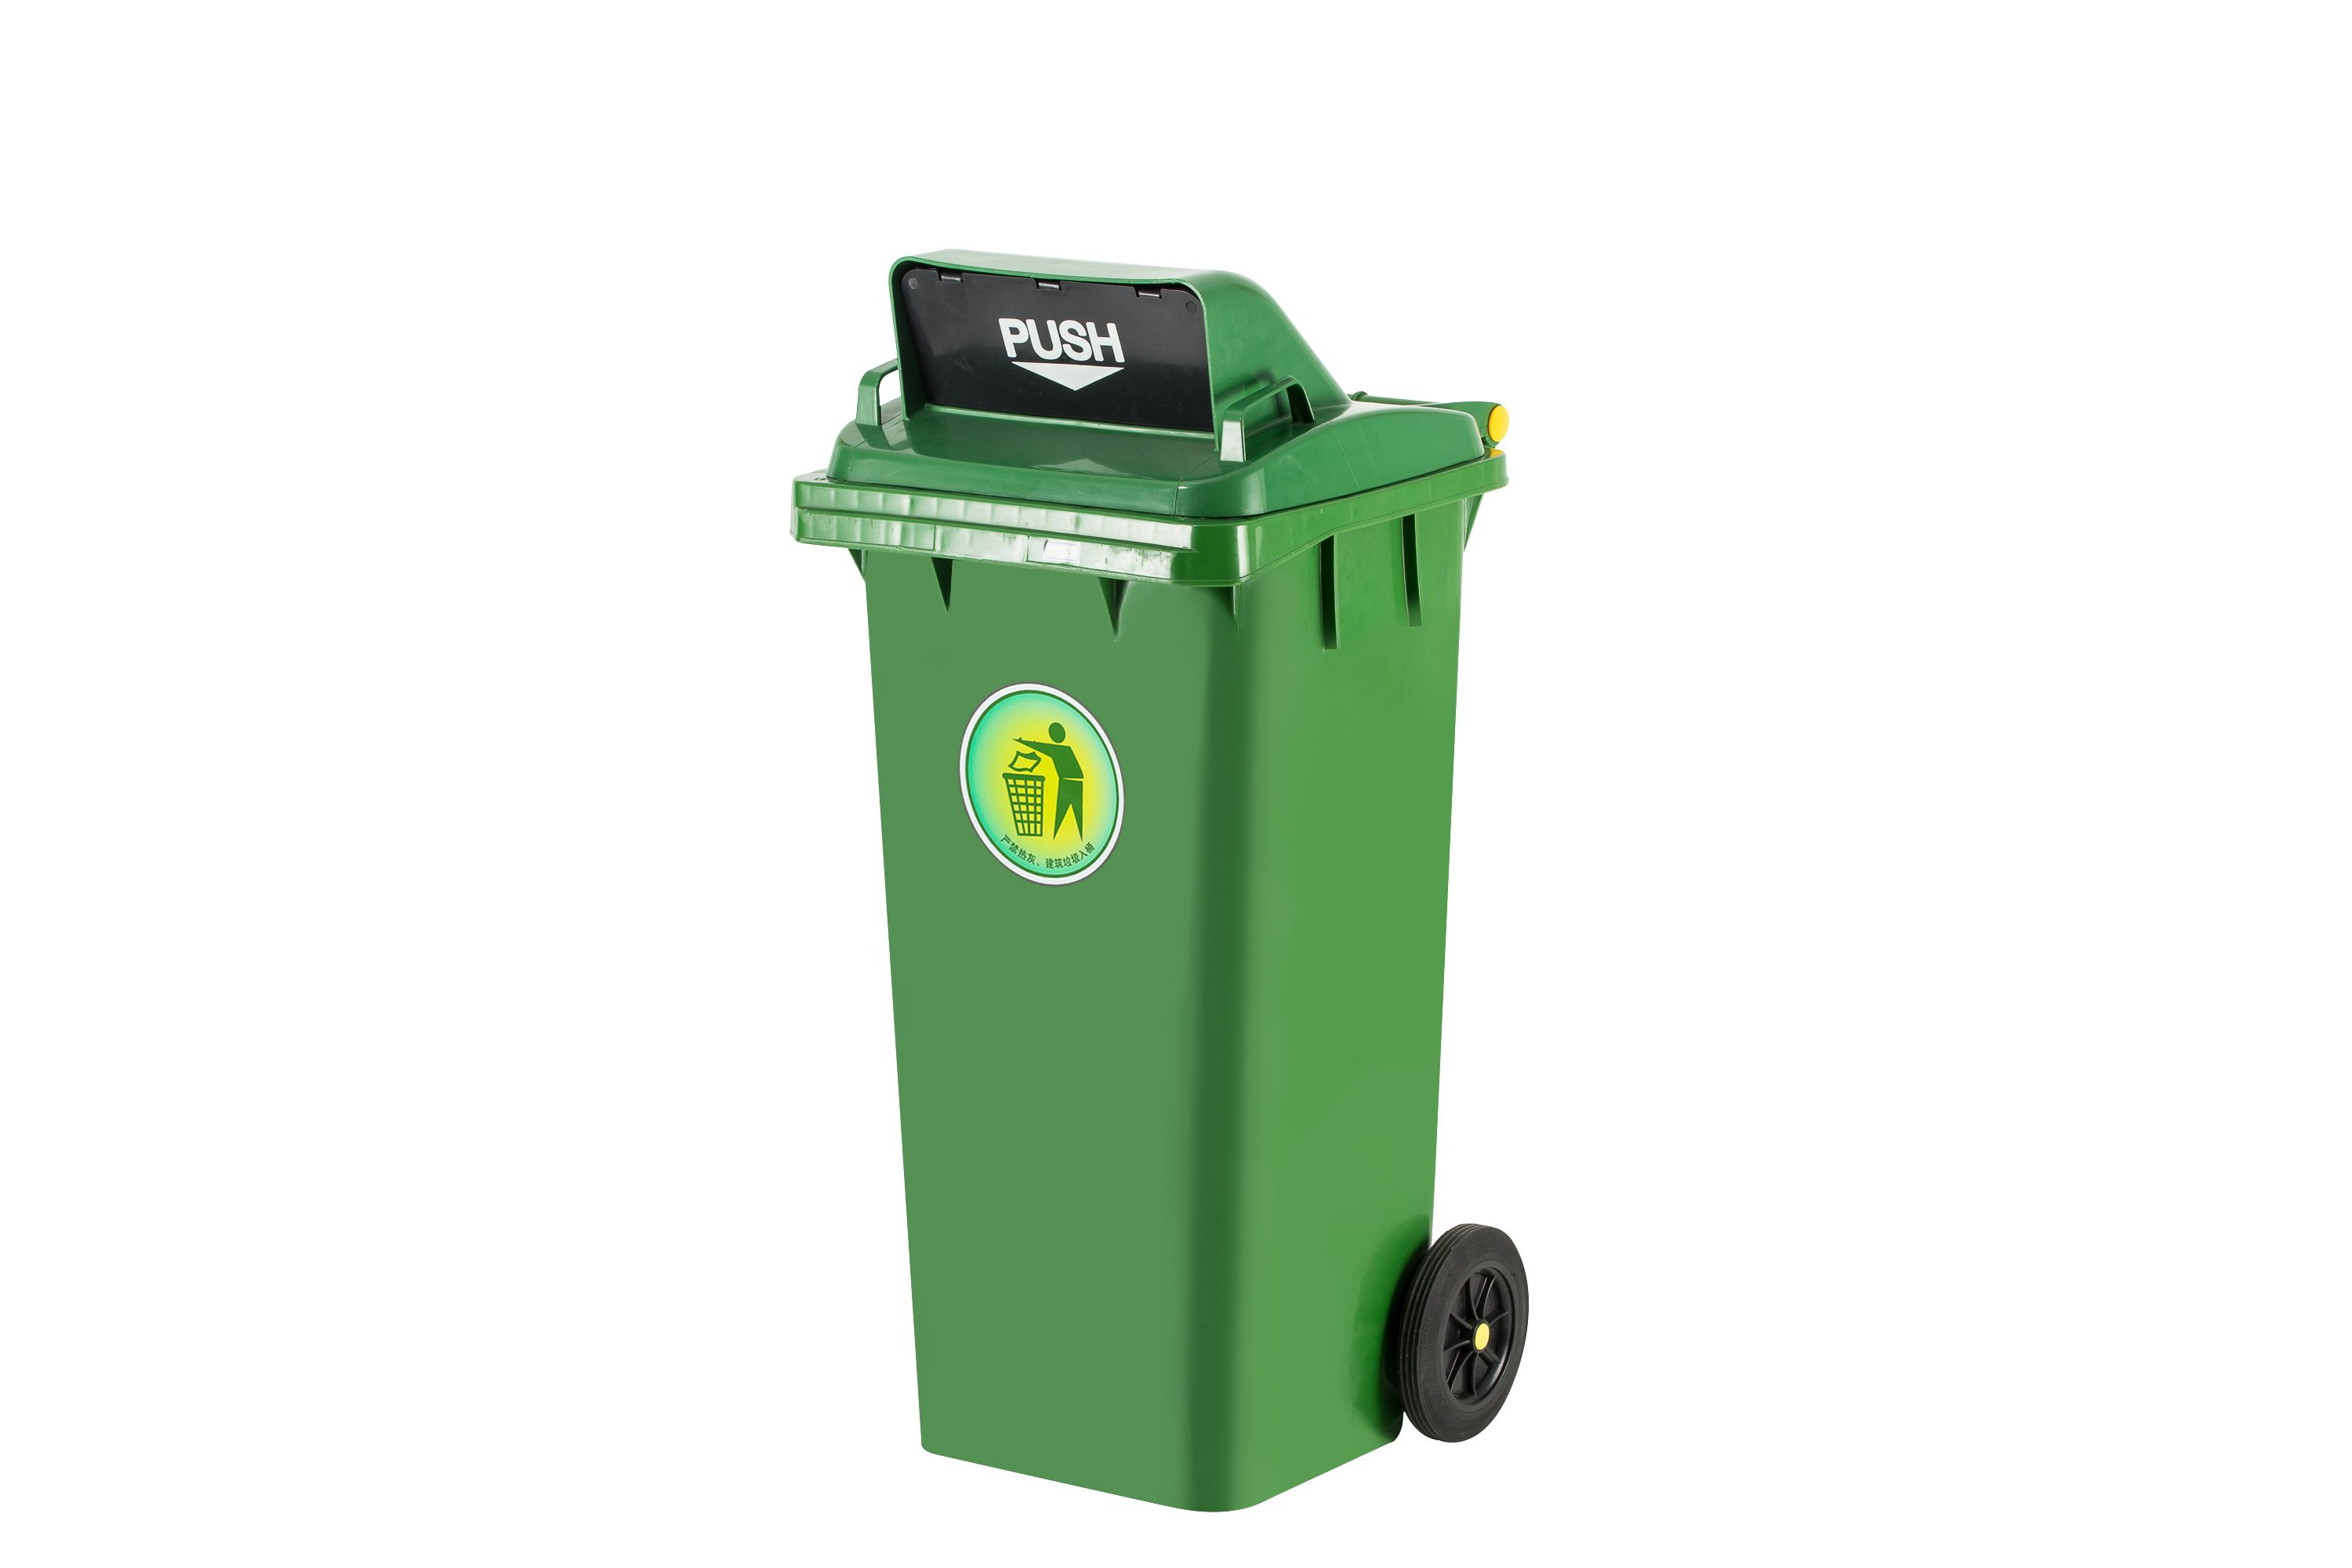 Outdoor Street Garbage Container Industrial Recycling Bin Recycle Hospital Plastic Waste Bin Price Industrial Recycling Bins Garbage Containers Plastic Waste